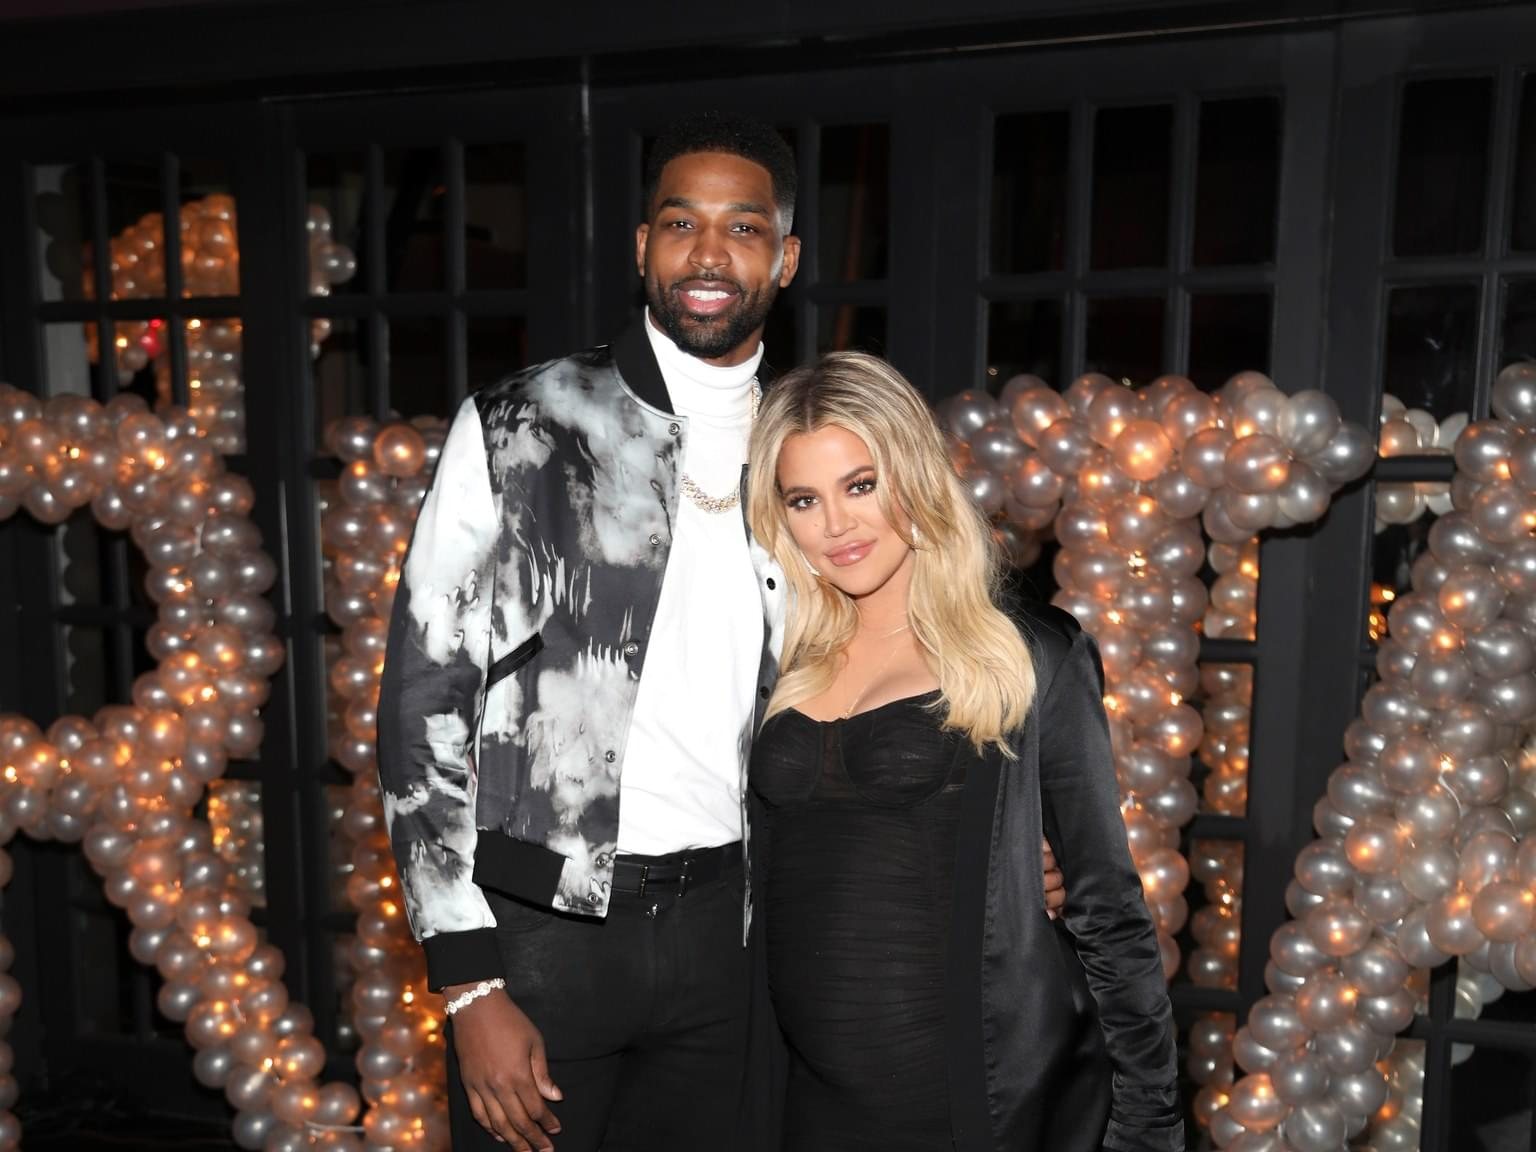 Khloé Kardashian Says Hearts 'Should Be Treasured, Not Broken' After Tristan Thompson Split